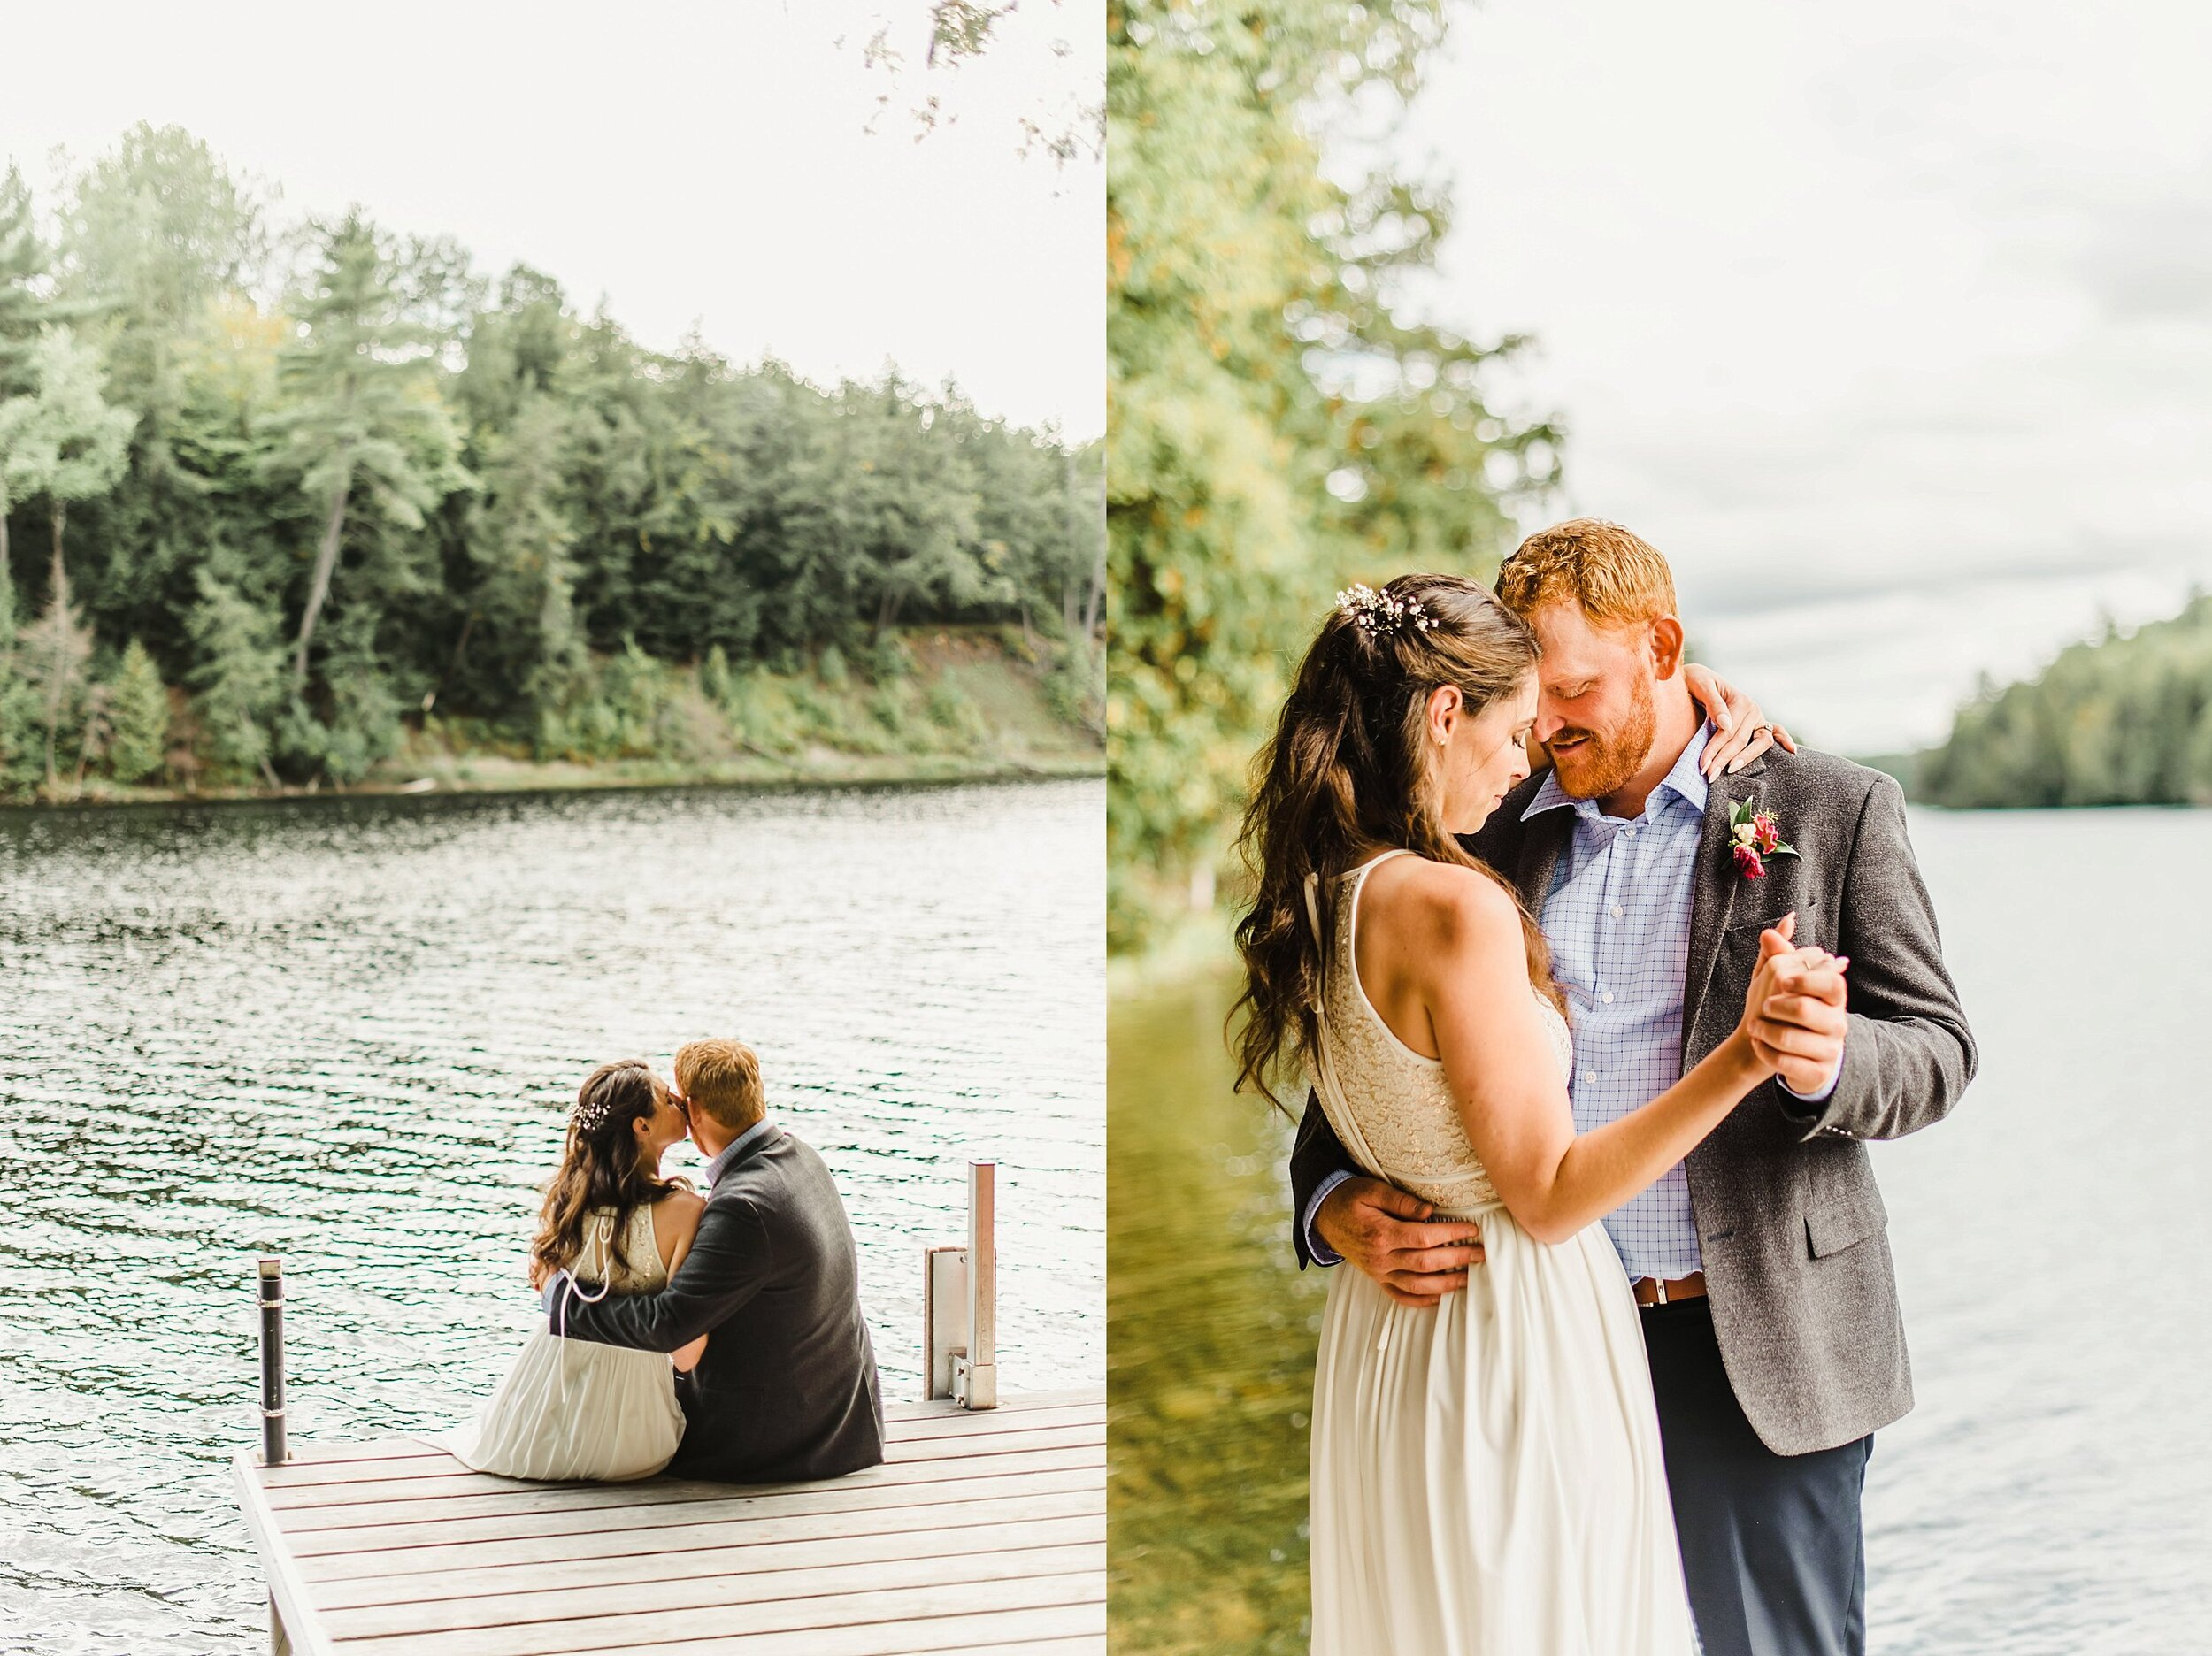 light airy indie fine art ottawa wedding photographer | Ali and Batoul Photography_1251.jpg